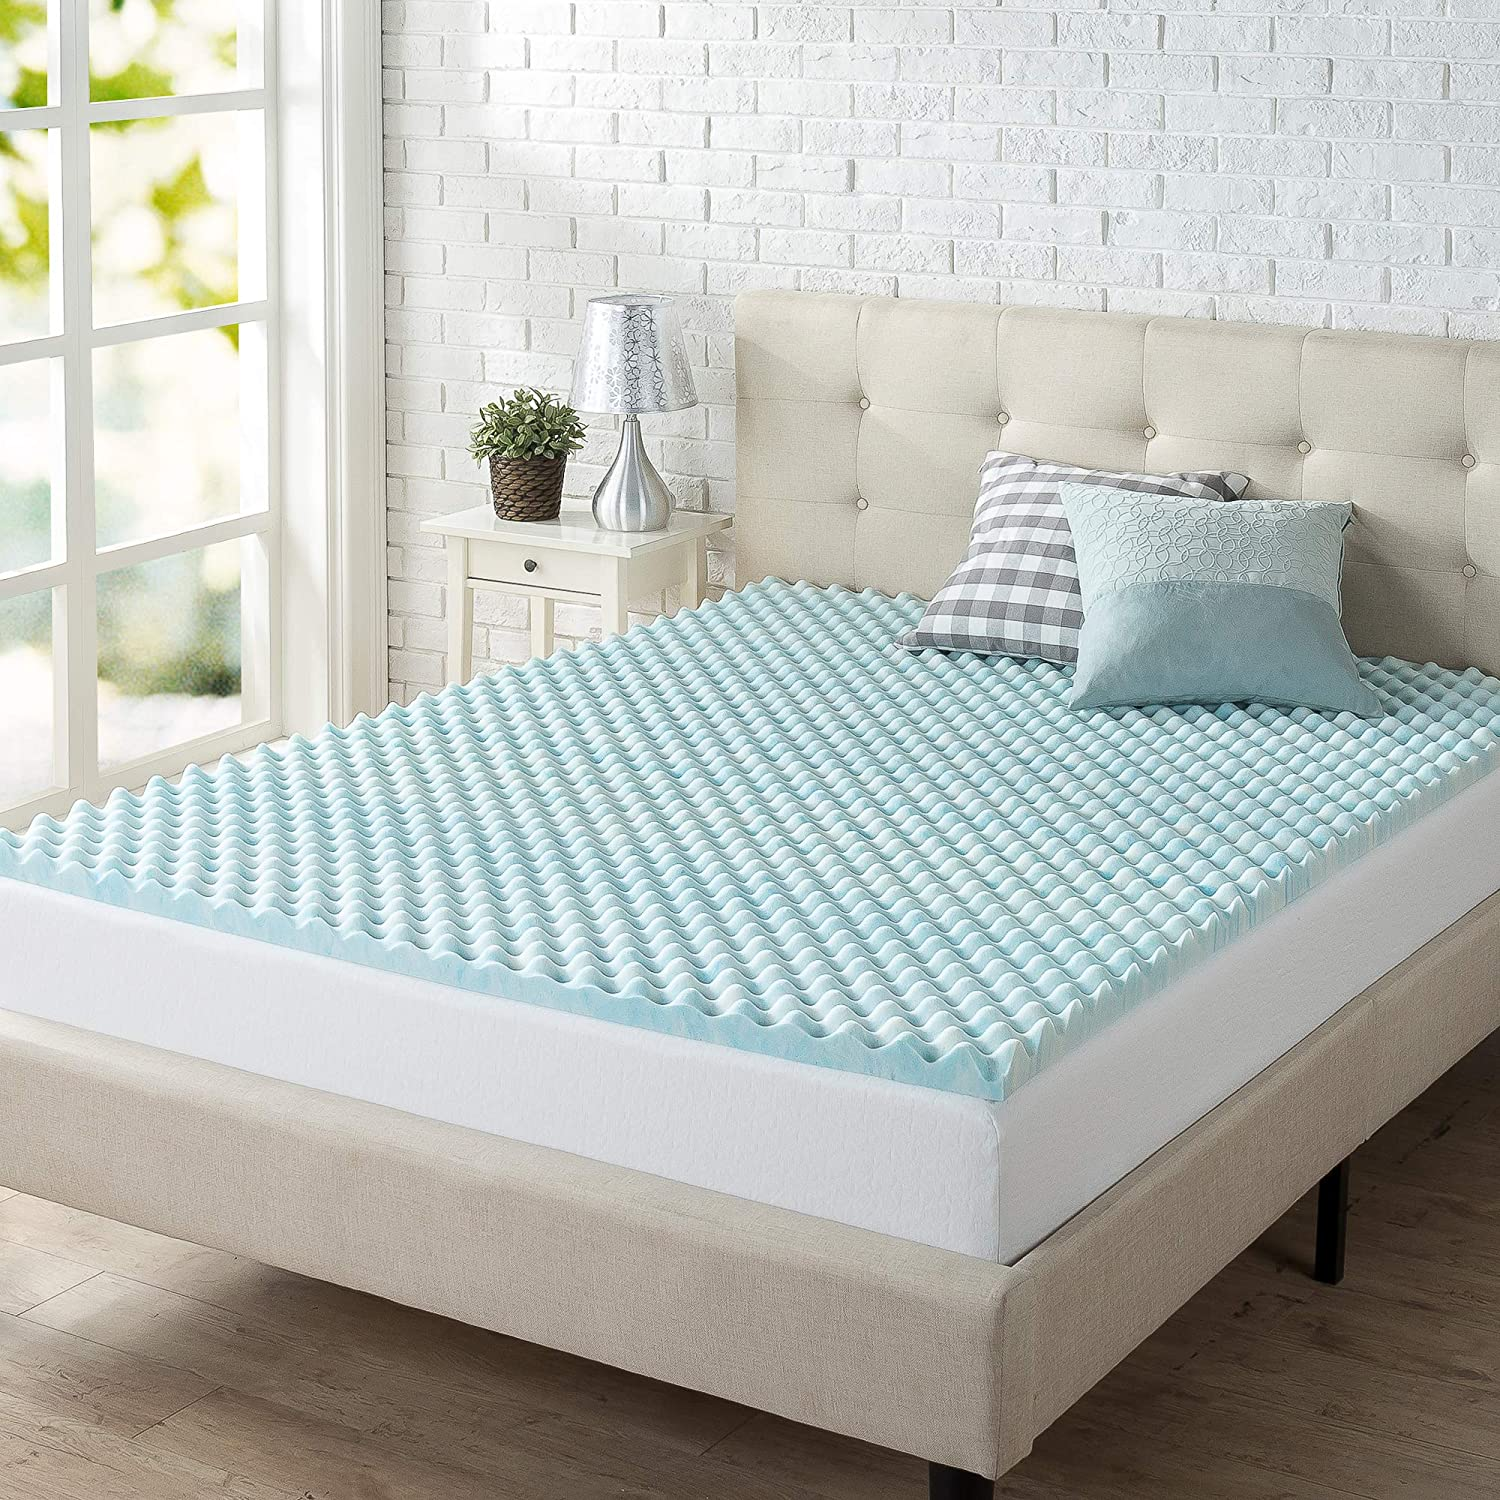 Zinus 2 Inch Swirl Gel Memory Foam Convoluted Mattress Topper / Cooling, Airflow Design / CertiPUR-US Certified, Twin: Home & Kitchen